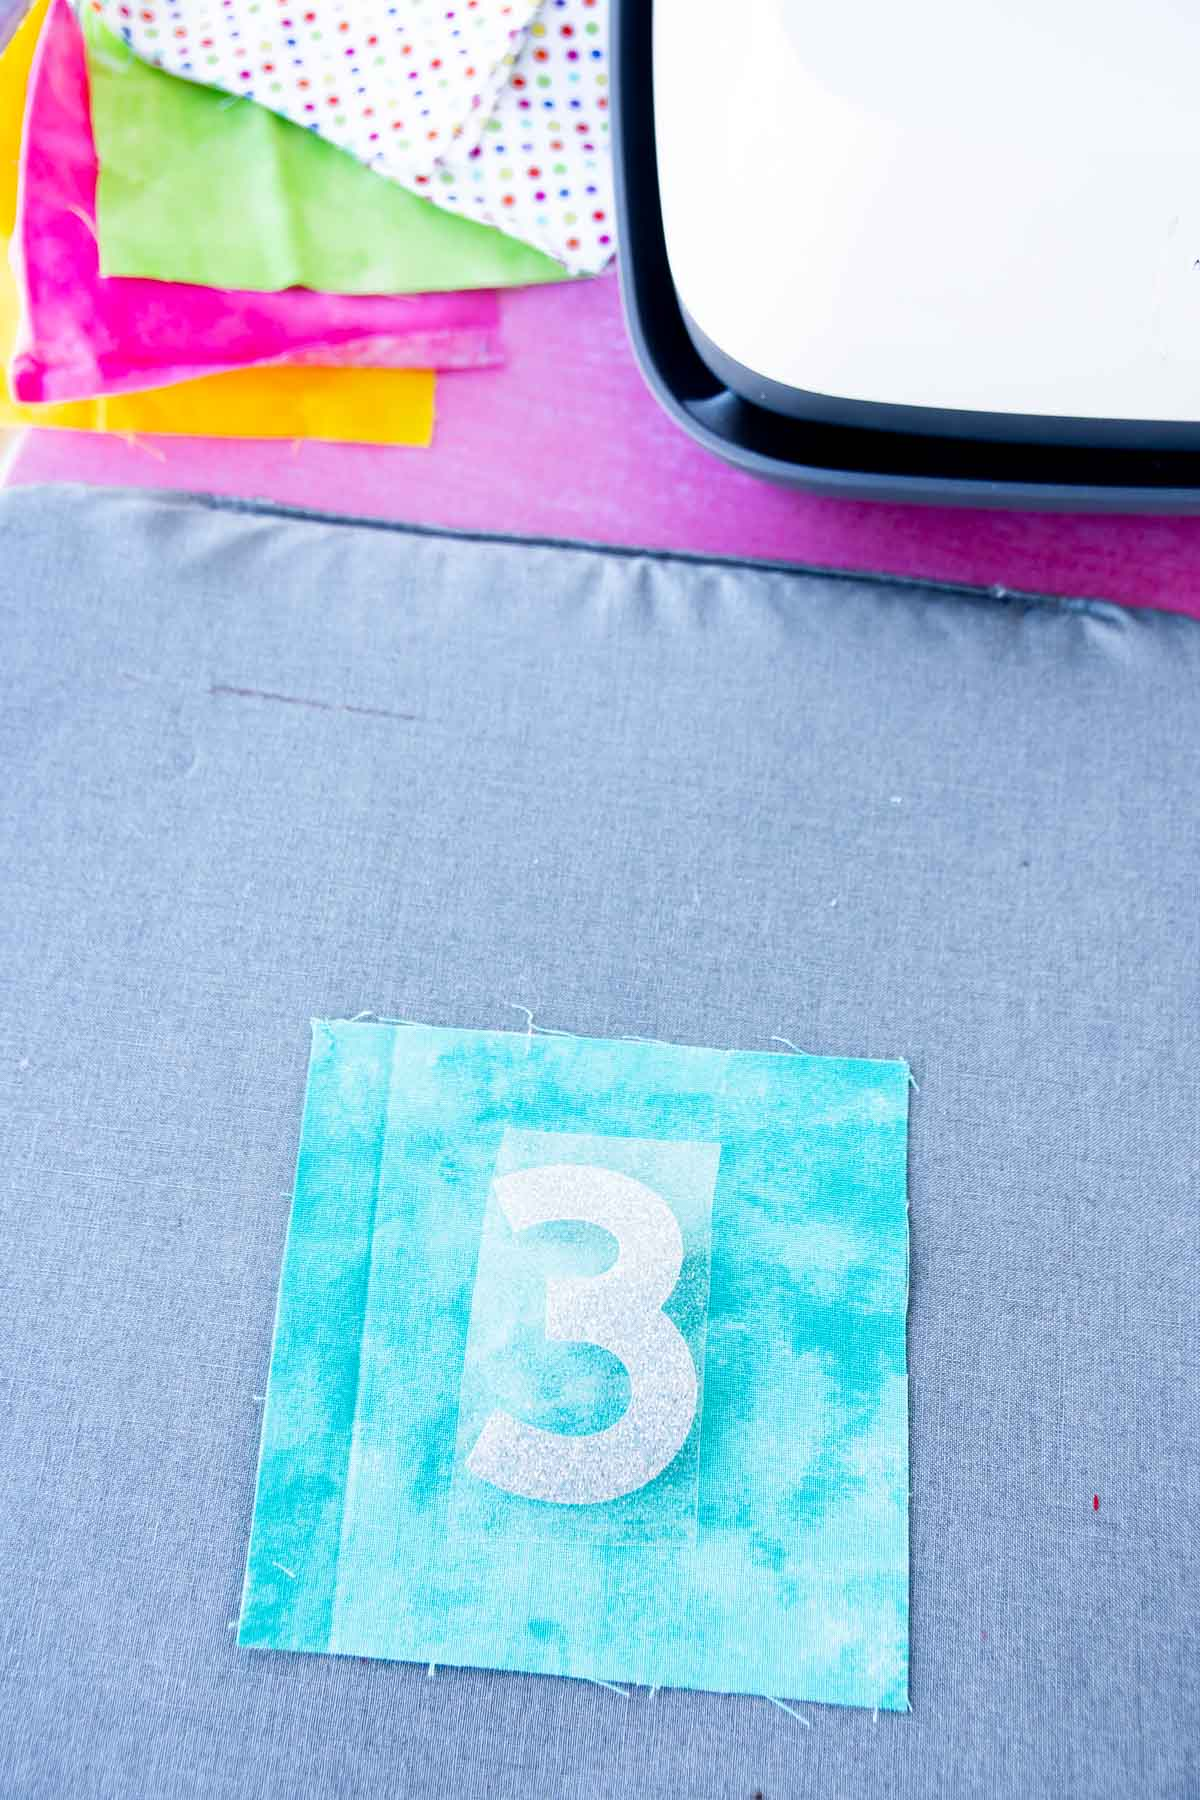 Fabric square with an iron on three on top of it